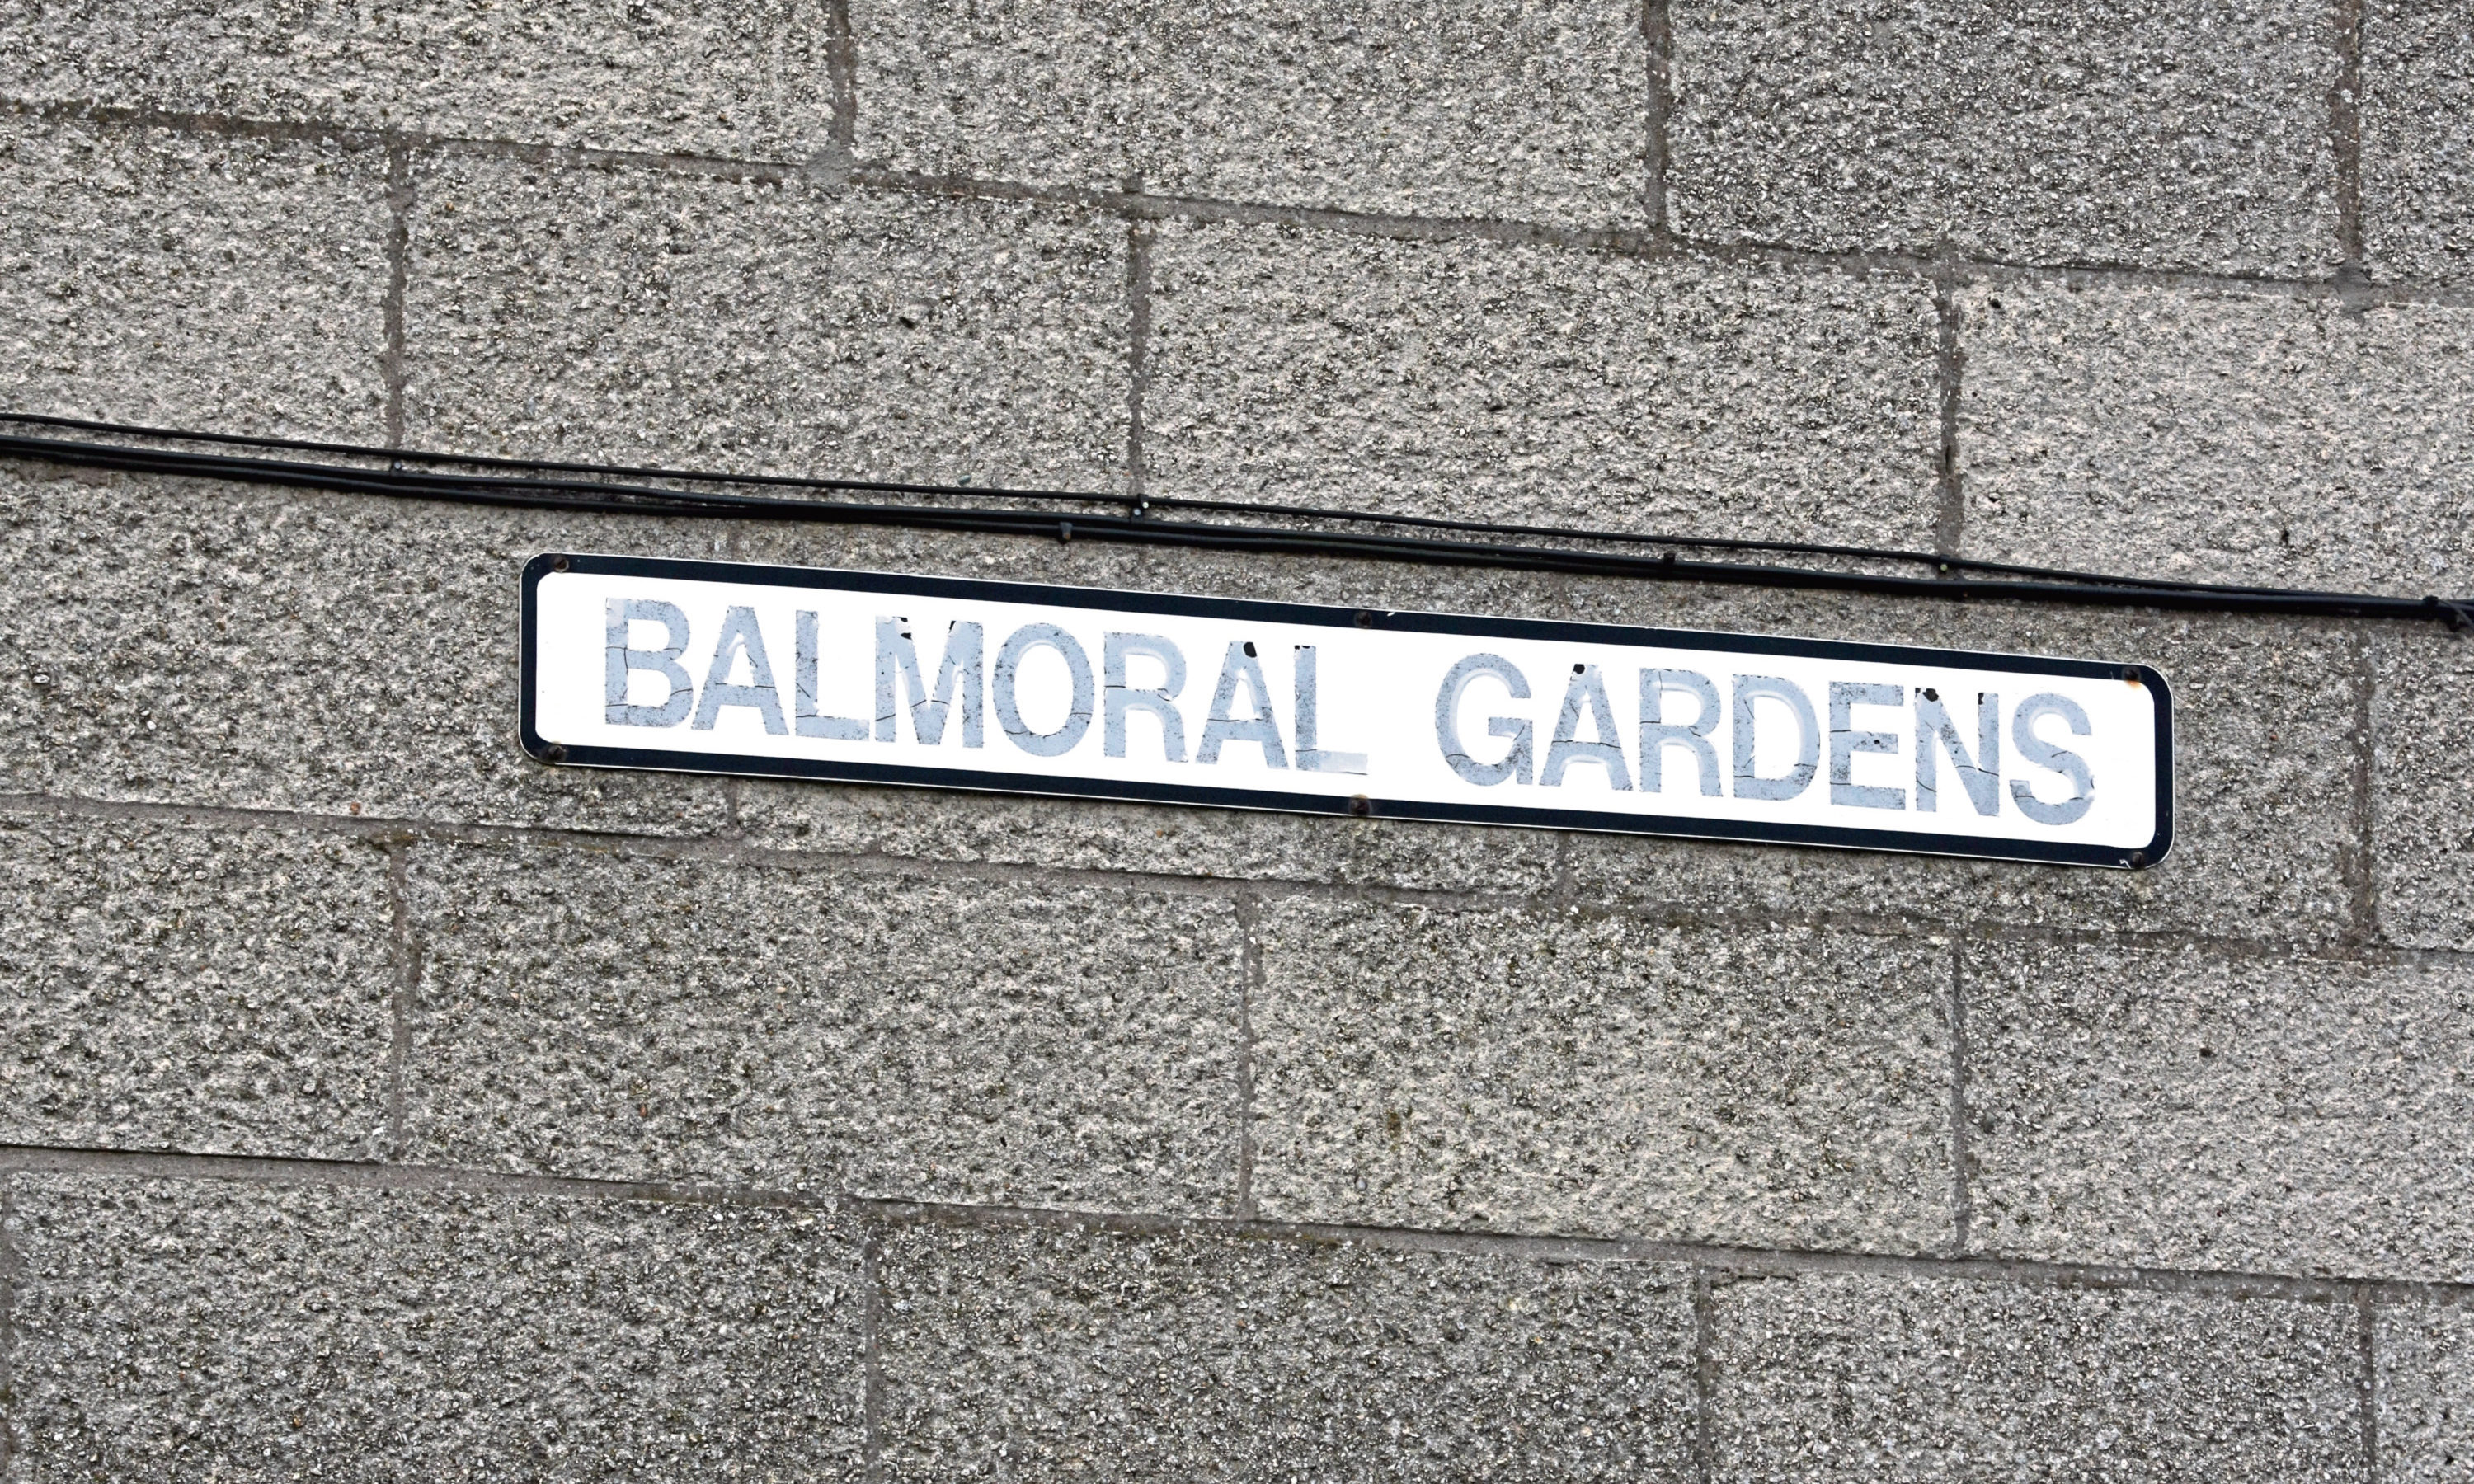 The offence took place in Dundee's Balmoral Gardens. (Stock image).